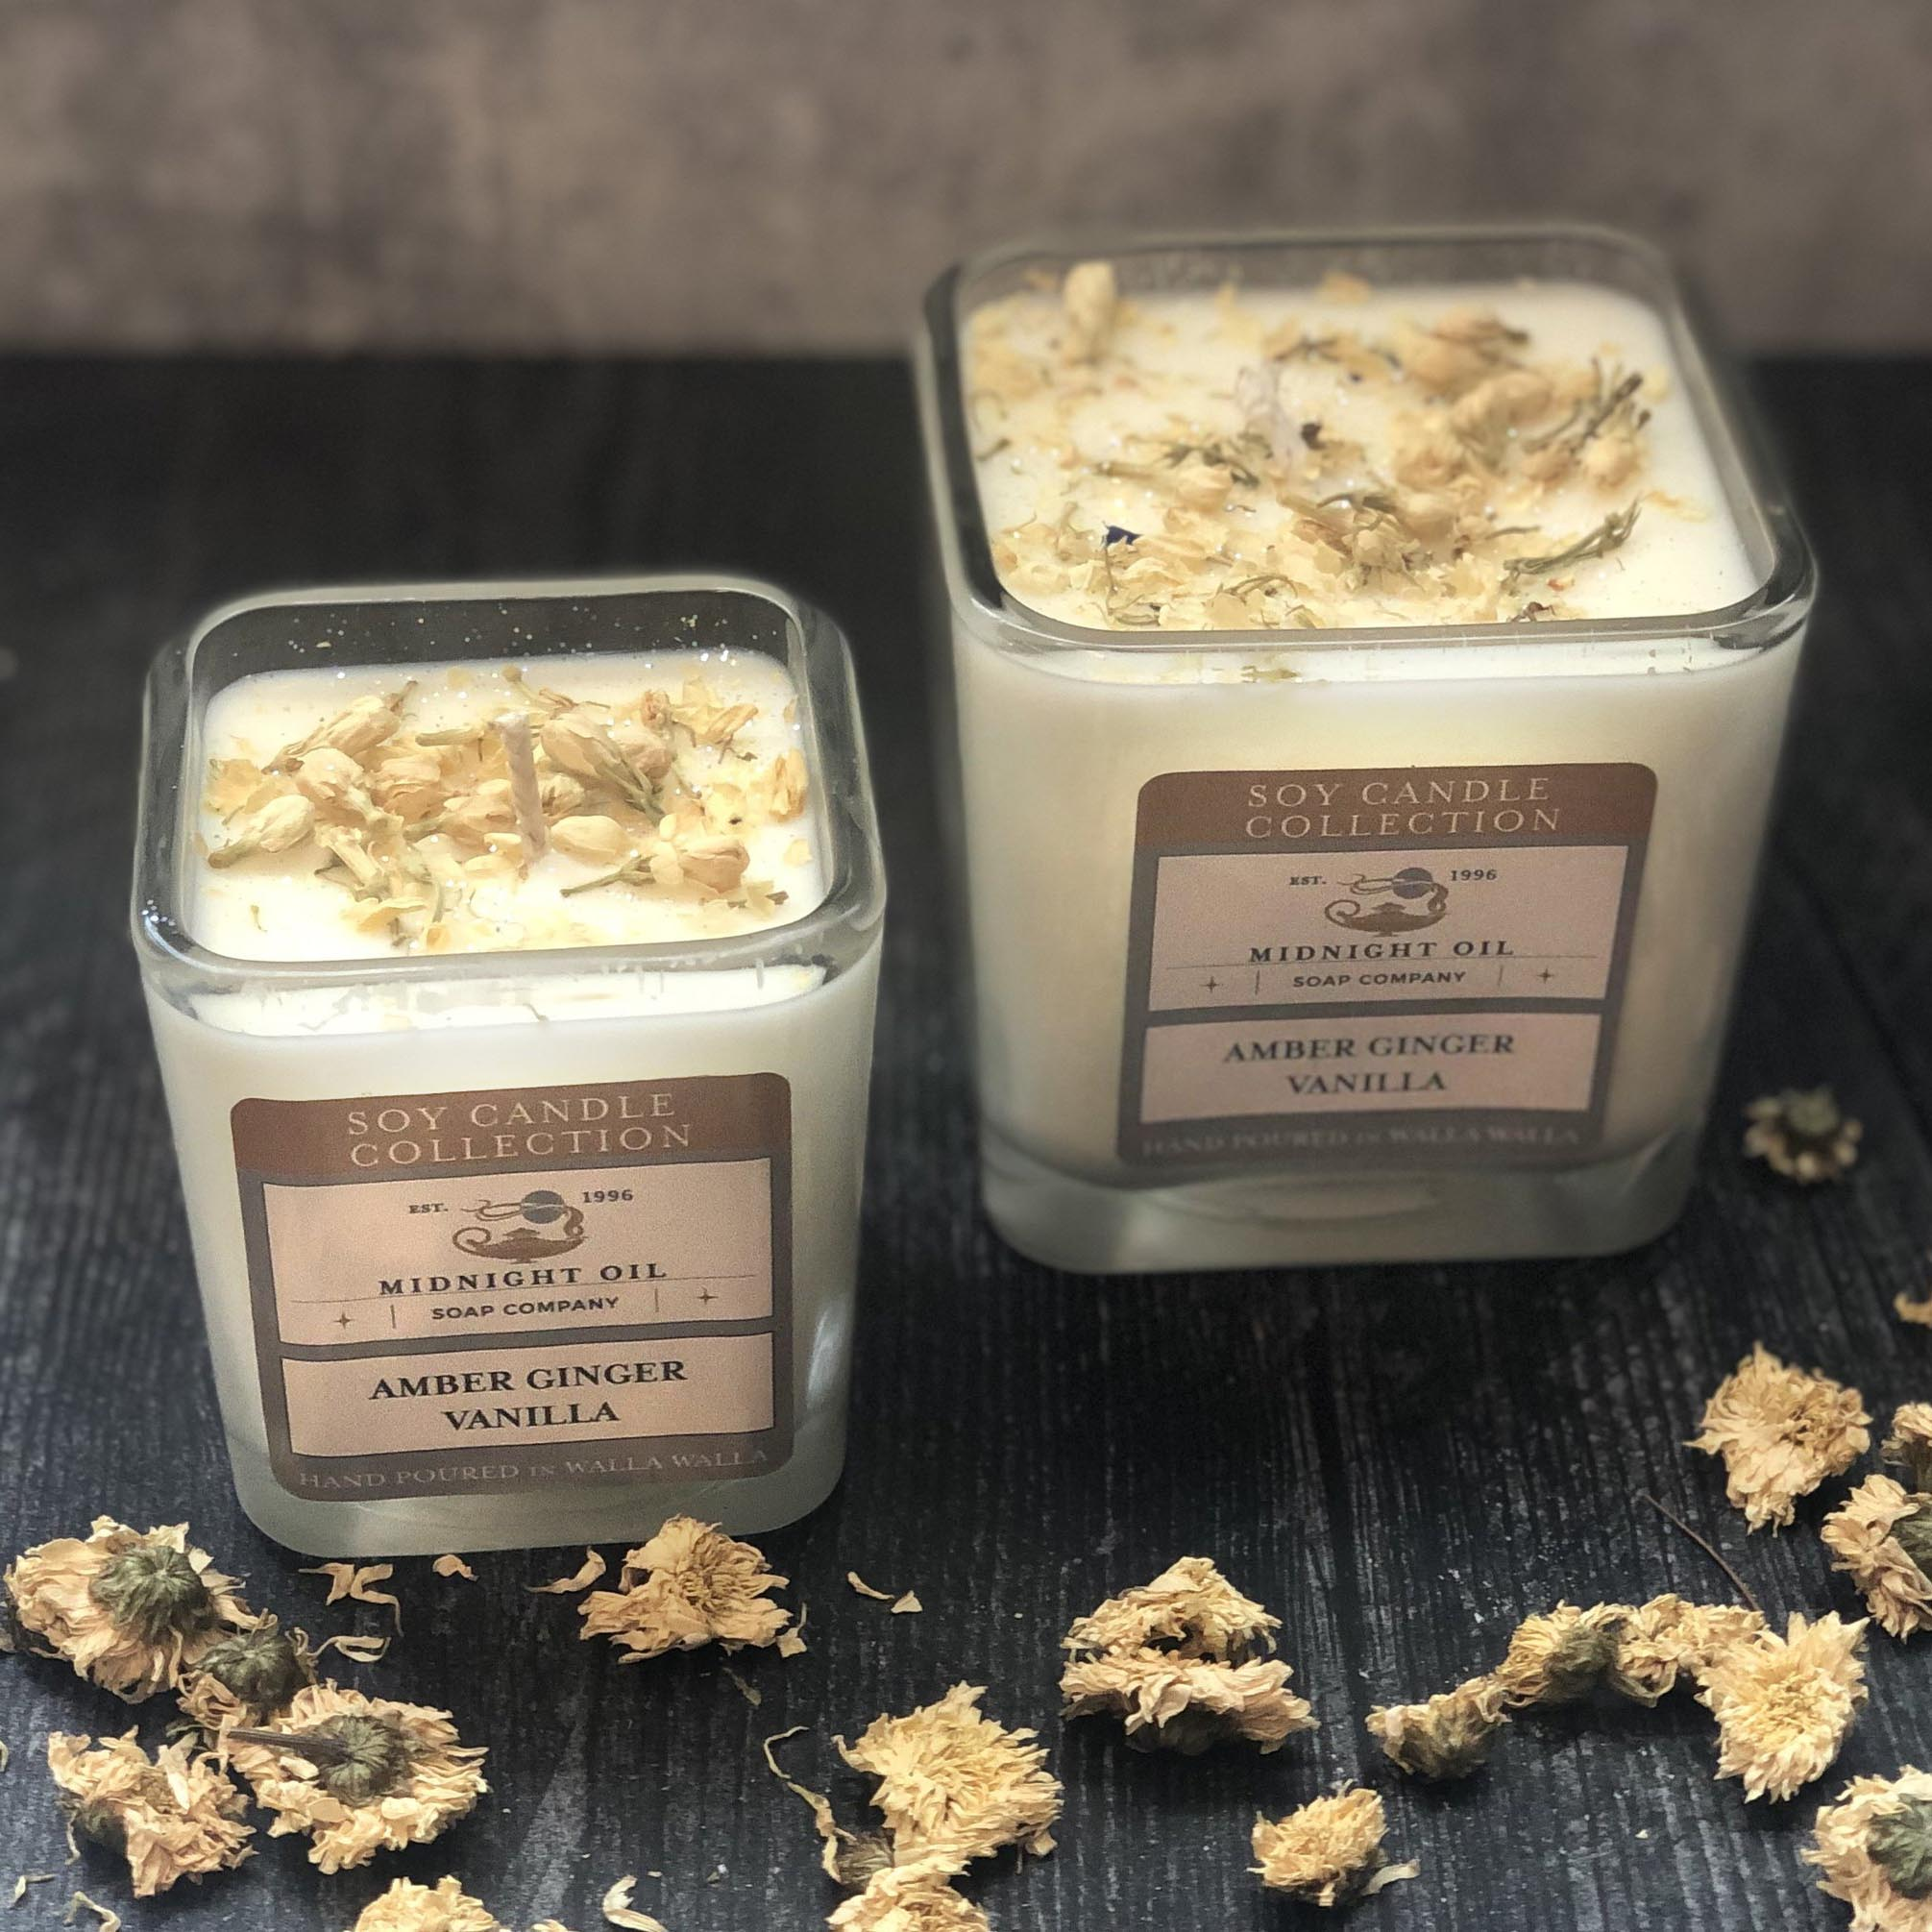 AMBER GINGER VANILLA (Soy Candle)